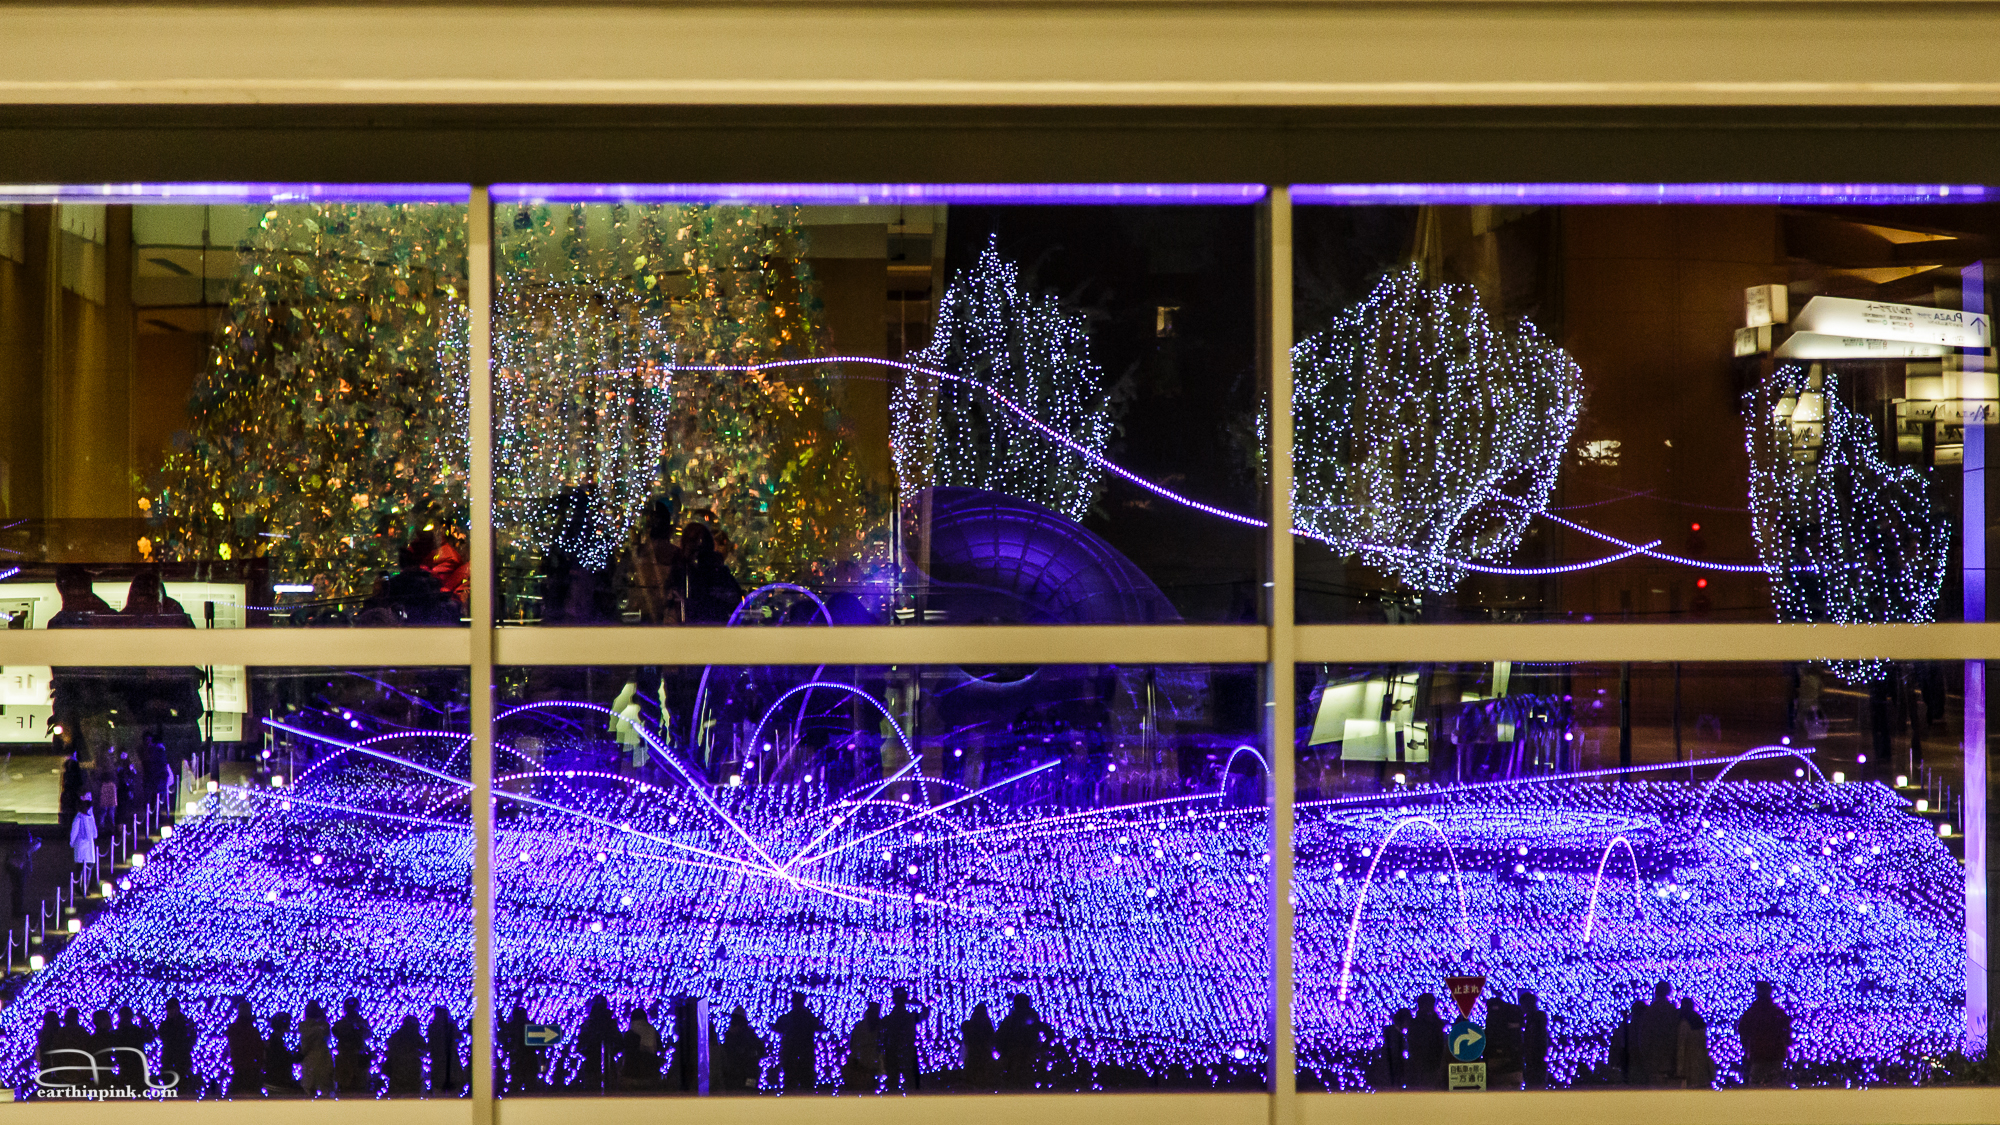 Tokyo Midtown Illumination in Roppongi - a carpet of LEDs the size of a football field, seen through a window of a nearby mall. If you look closely, you'll see both the inside of the mall reflected in the glass and the illumination outside.